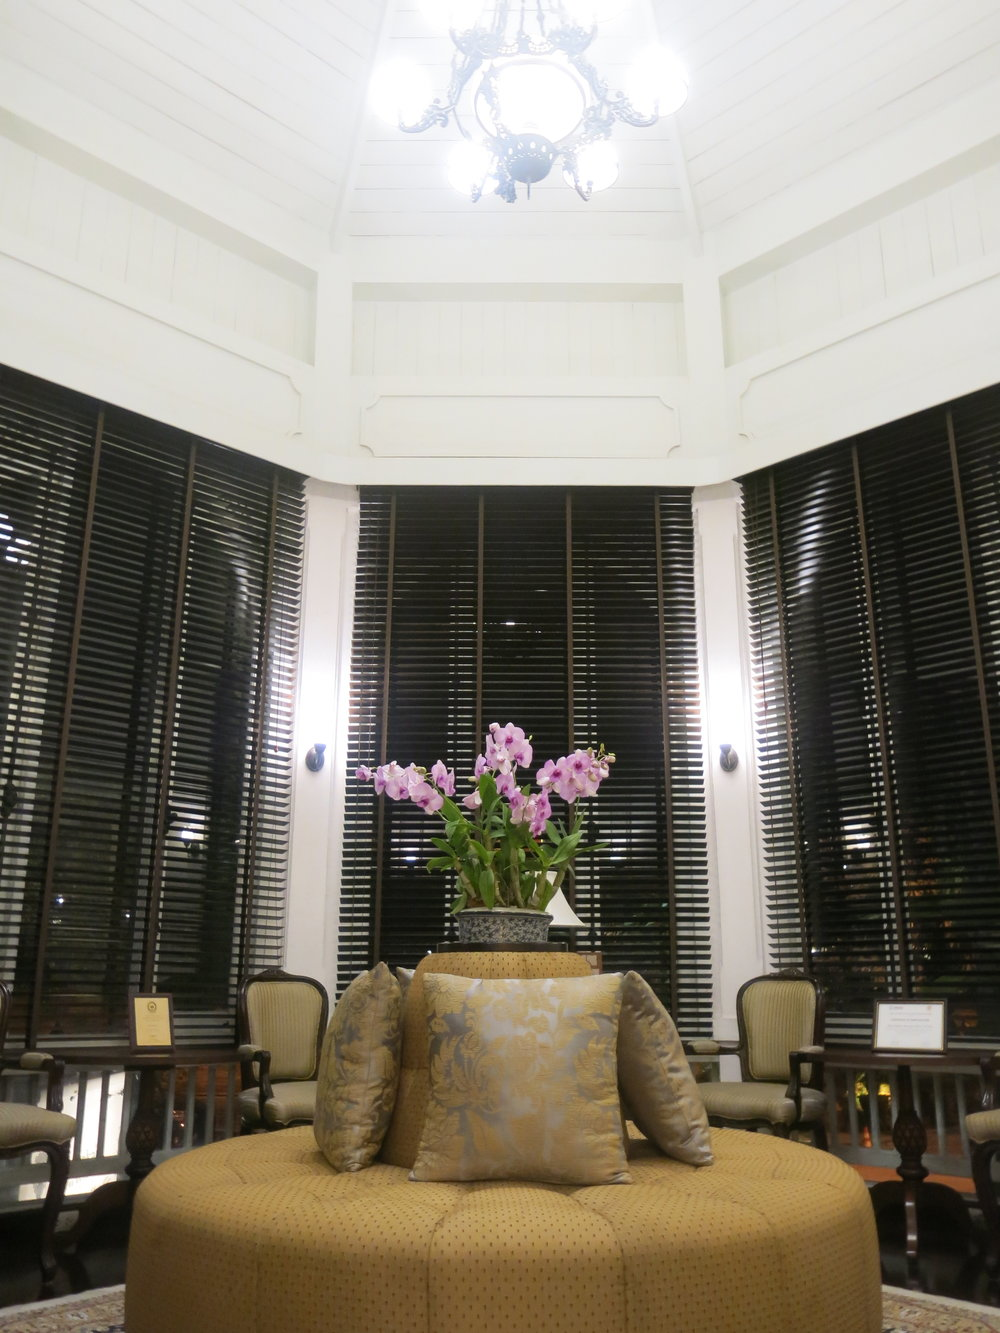 Lecture room next to the lobby